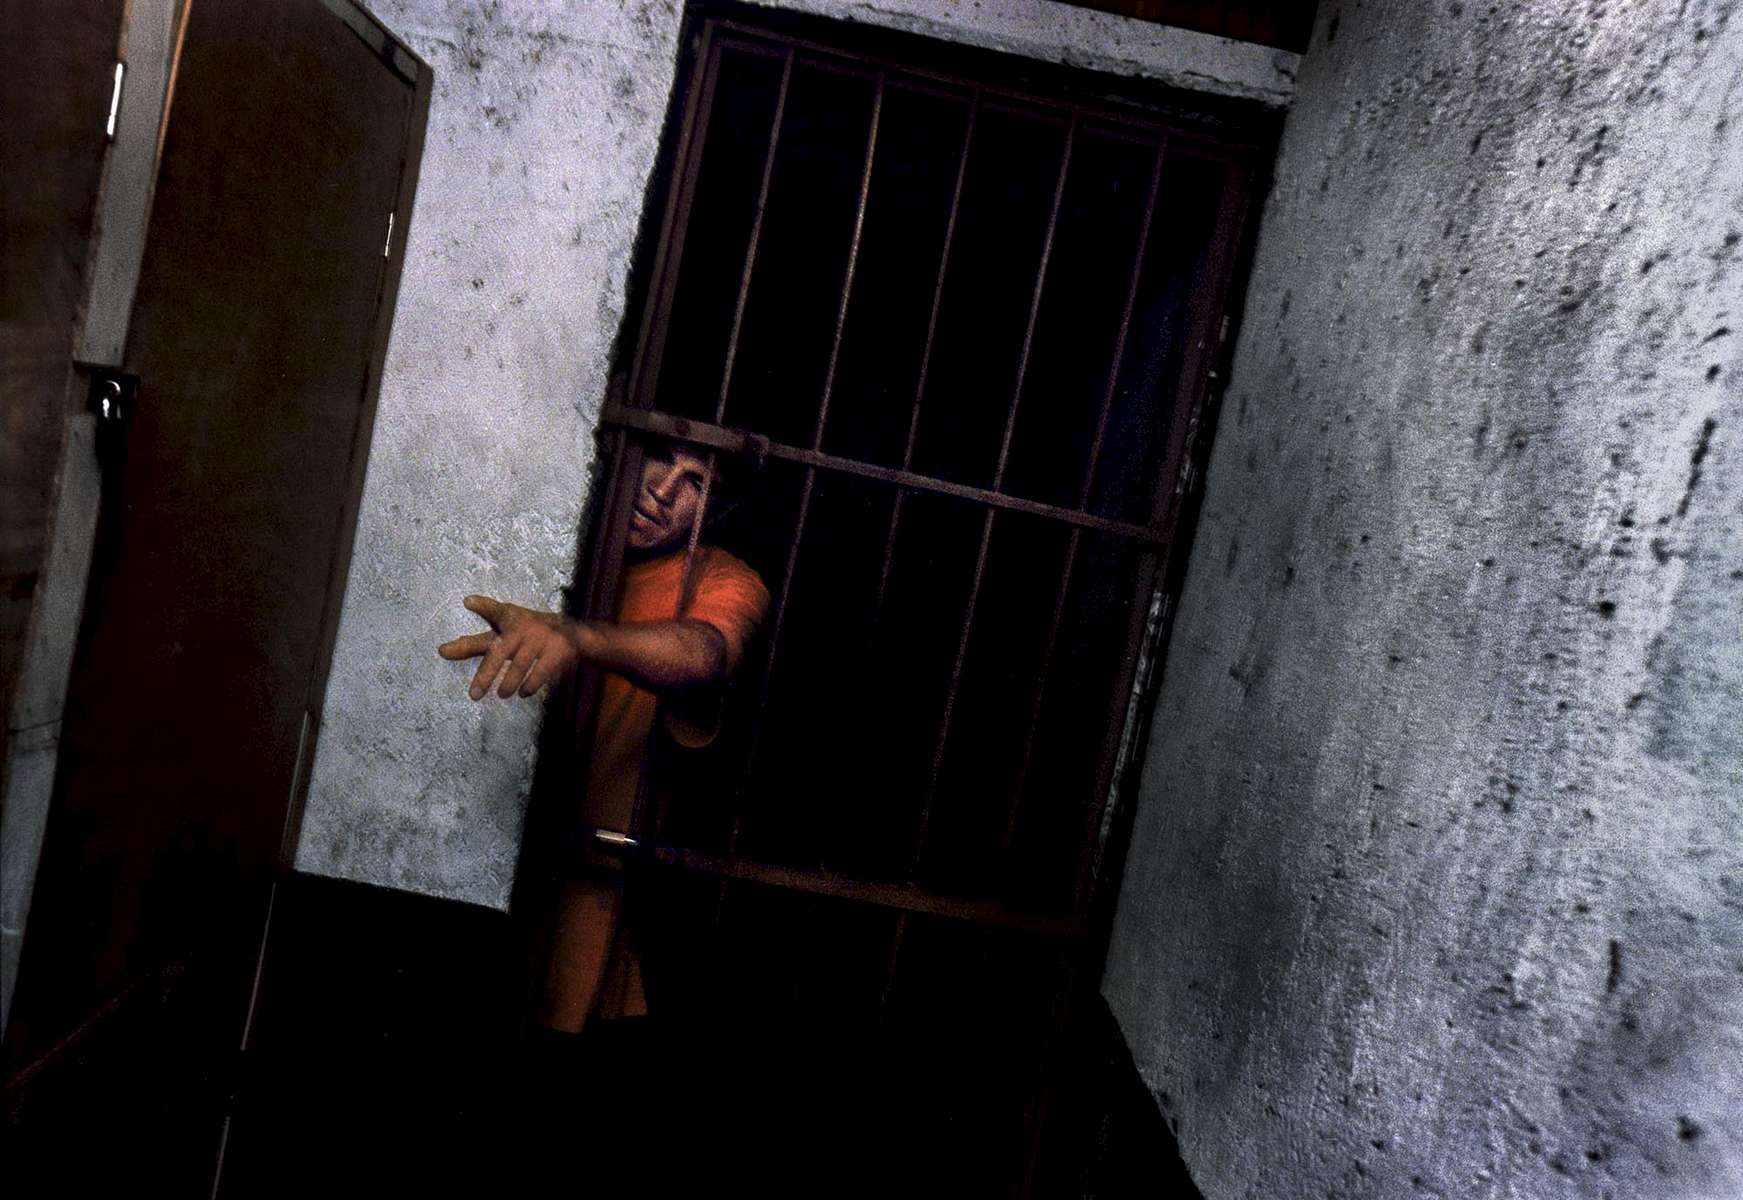 A man cries out to be released from jail after being arrested for public intoxication in La Carpio. The jail is a one-room area with no beds and no lights, and like many jails in Central America, is poorly maintained.